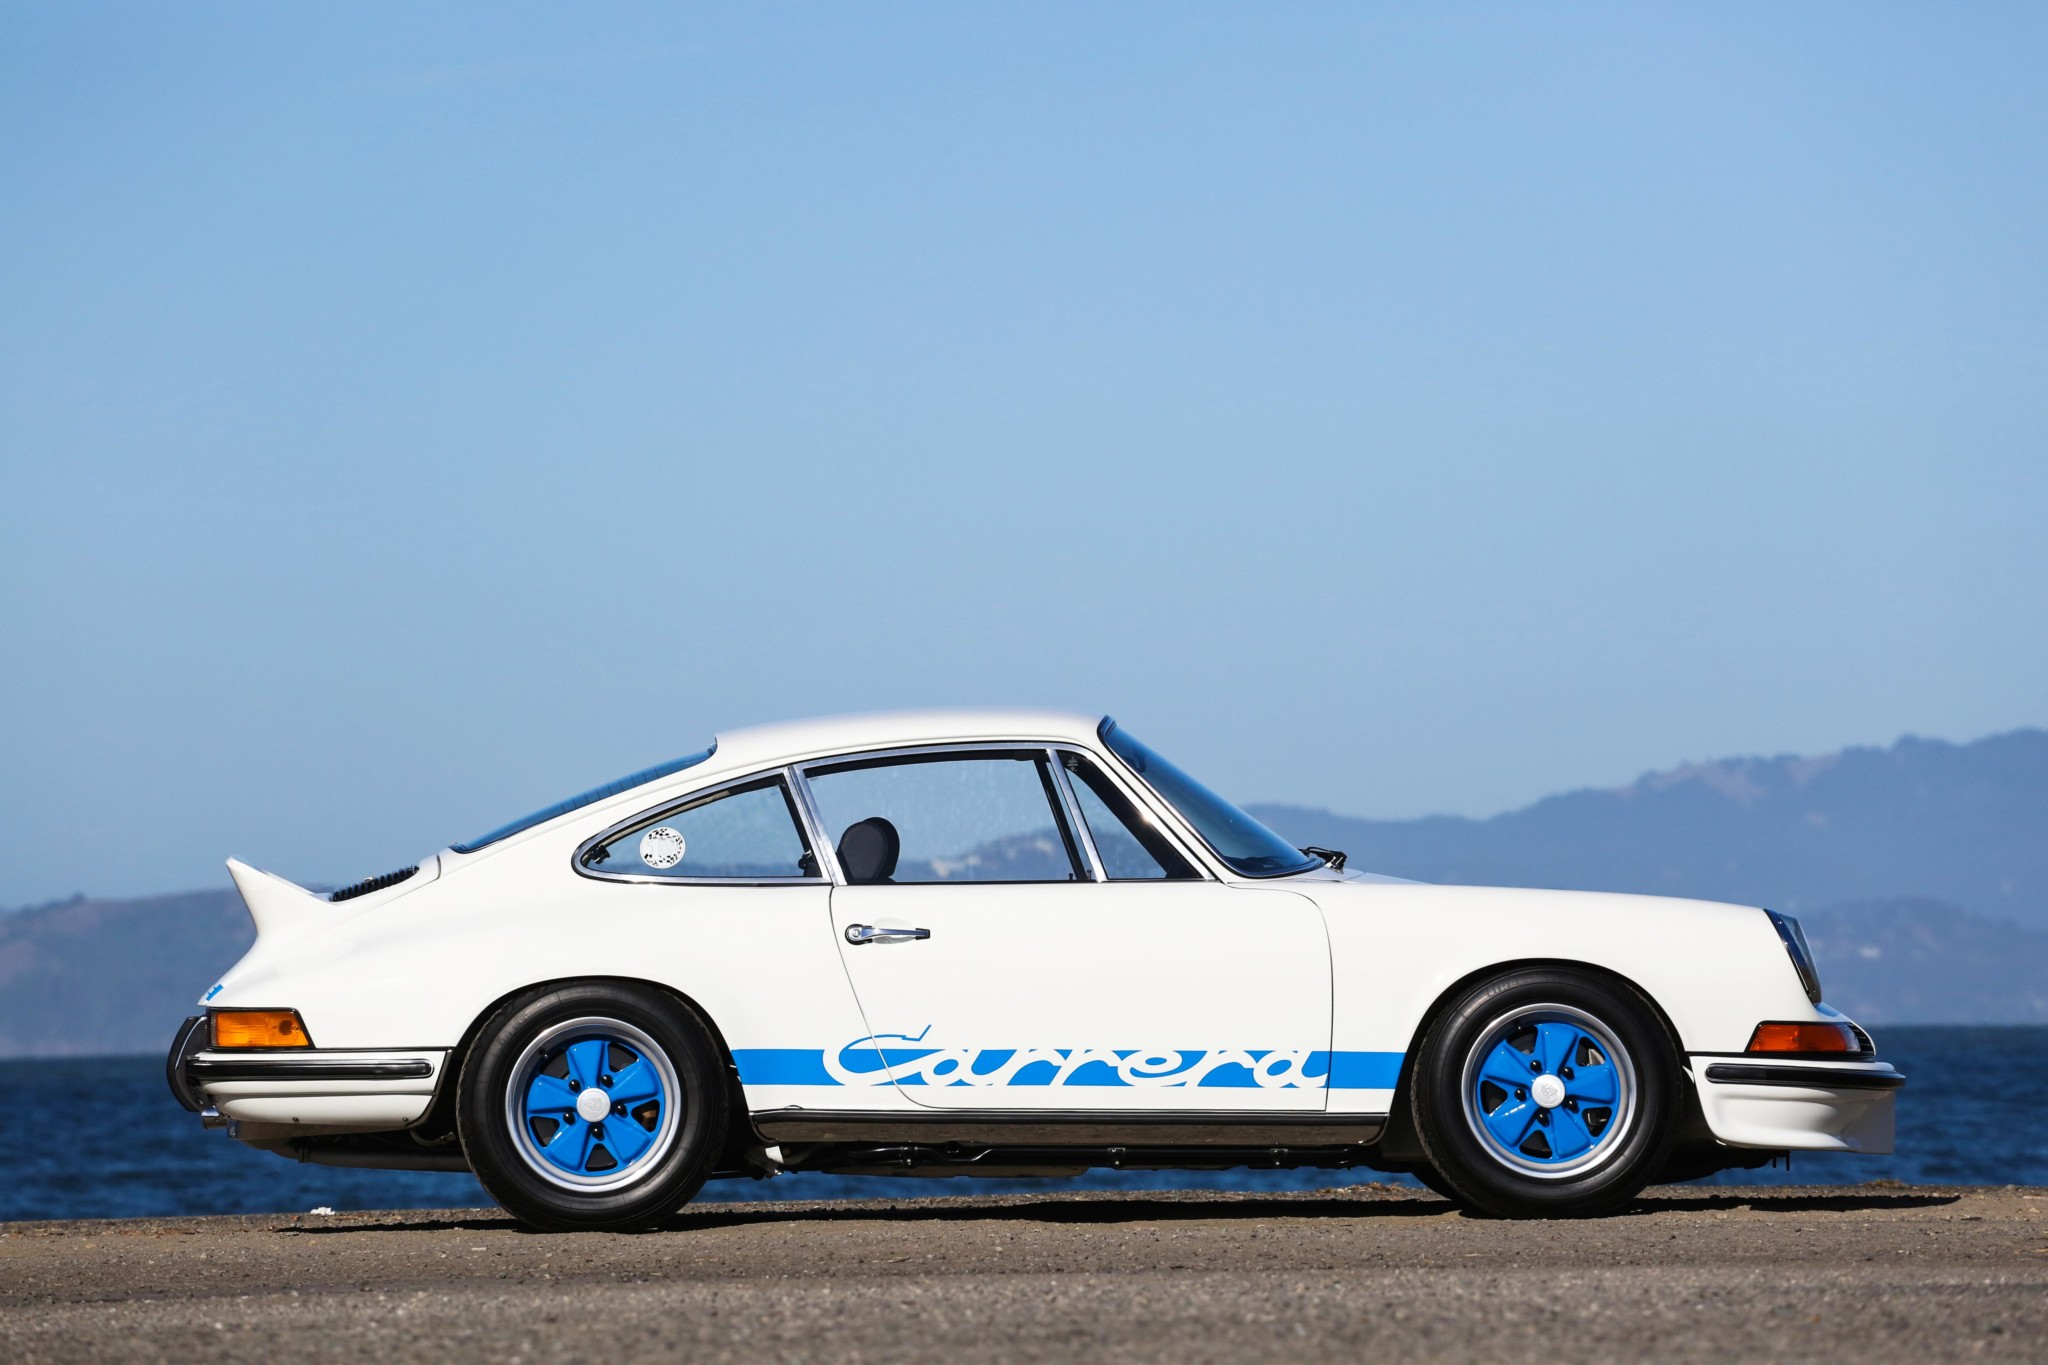 Porsche-911-Carrera-RS-2.7-1973-for-sale-23